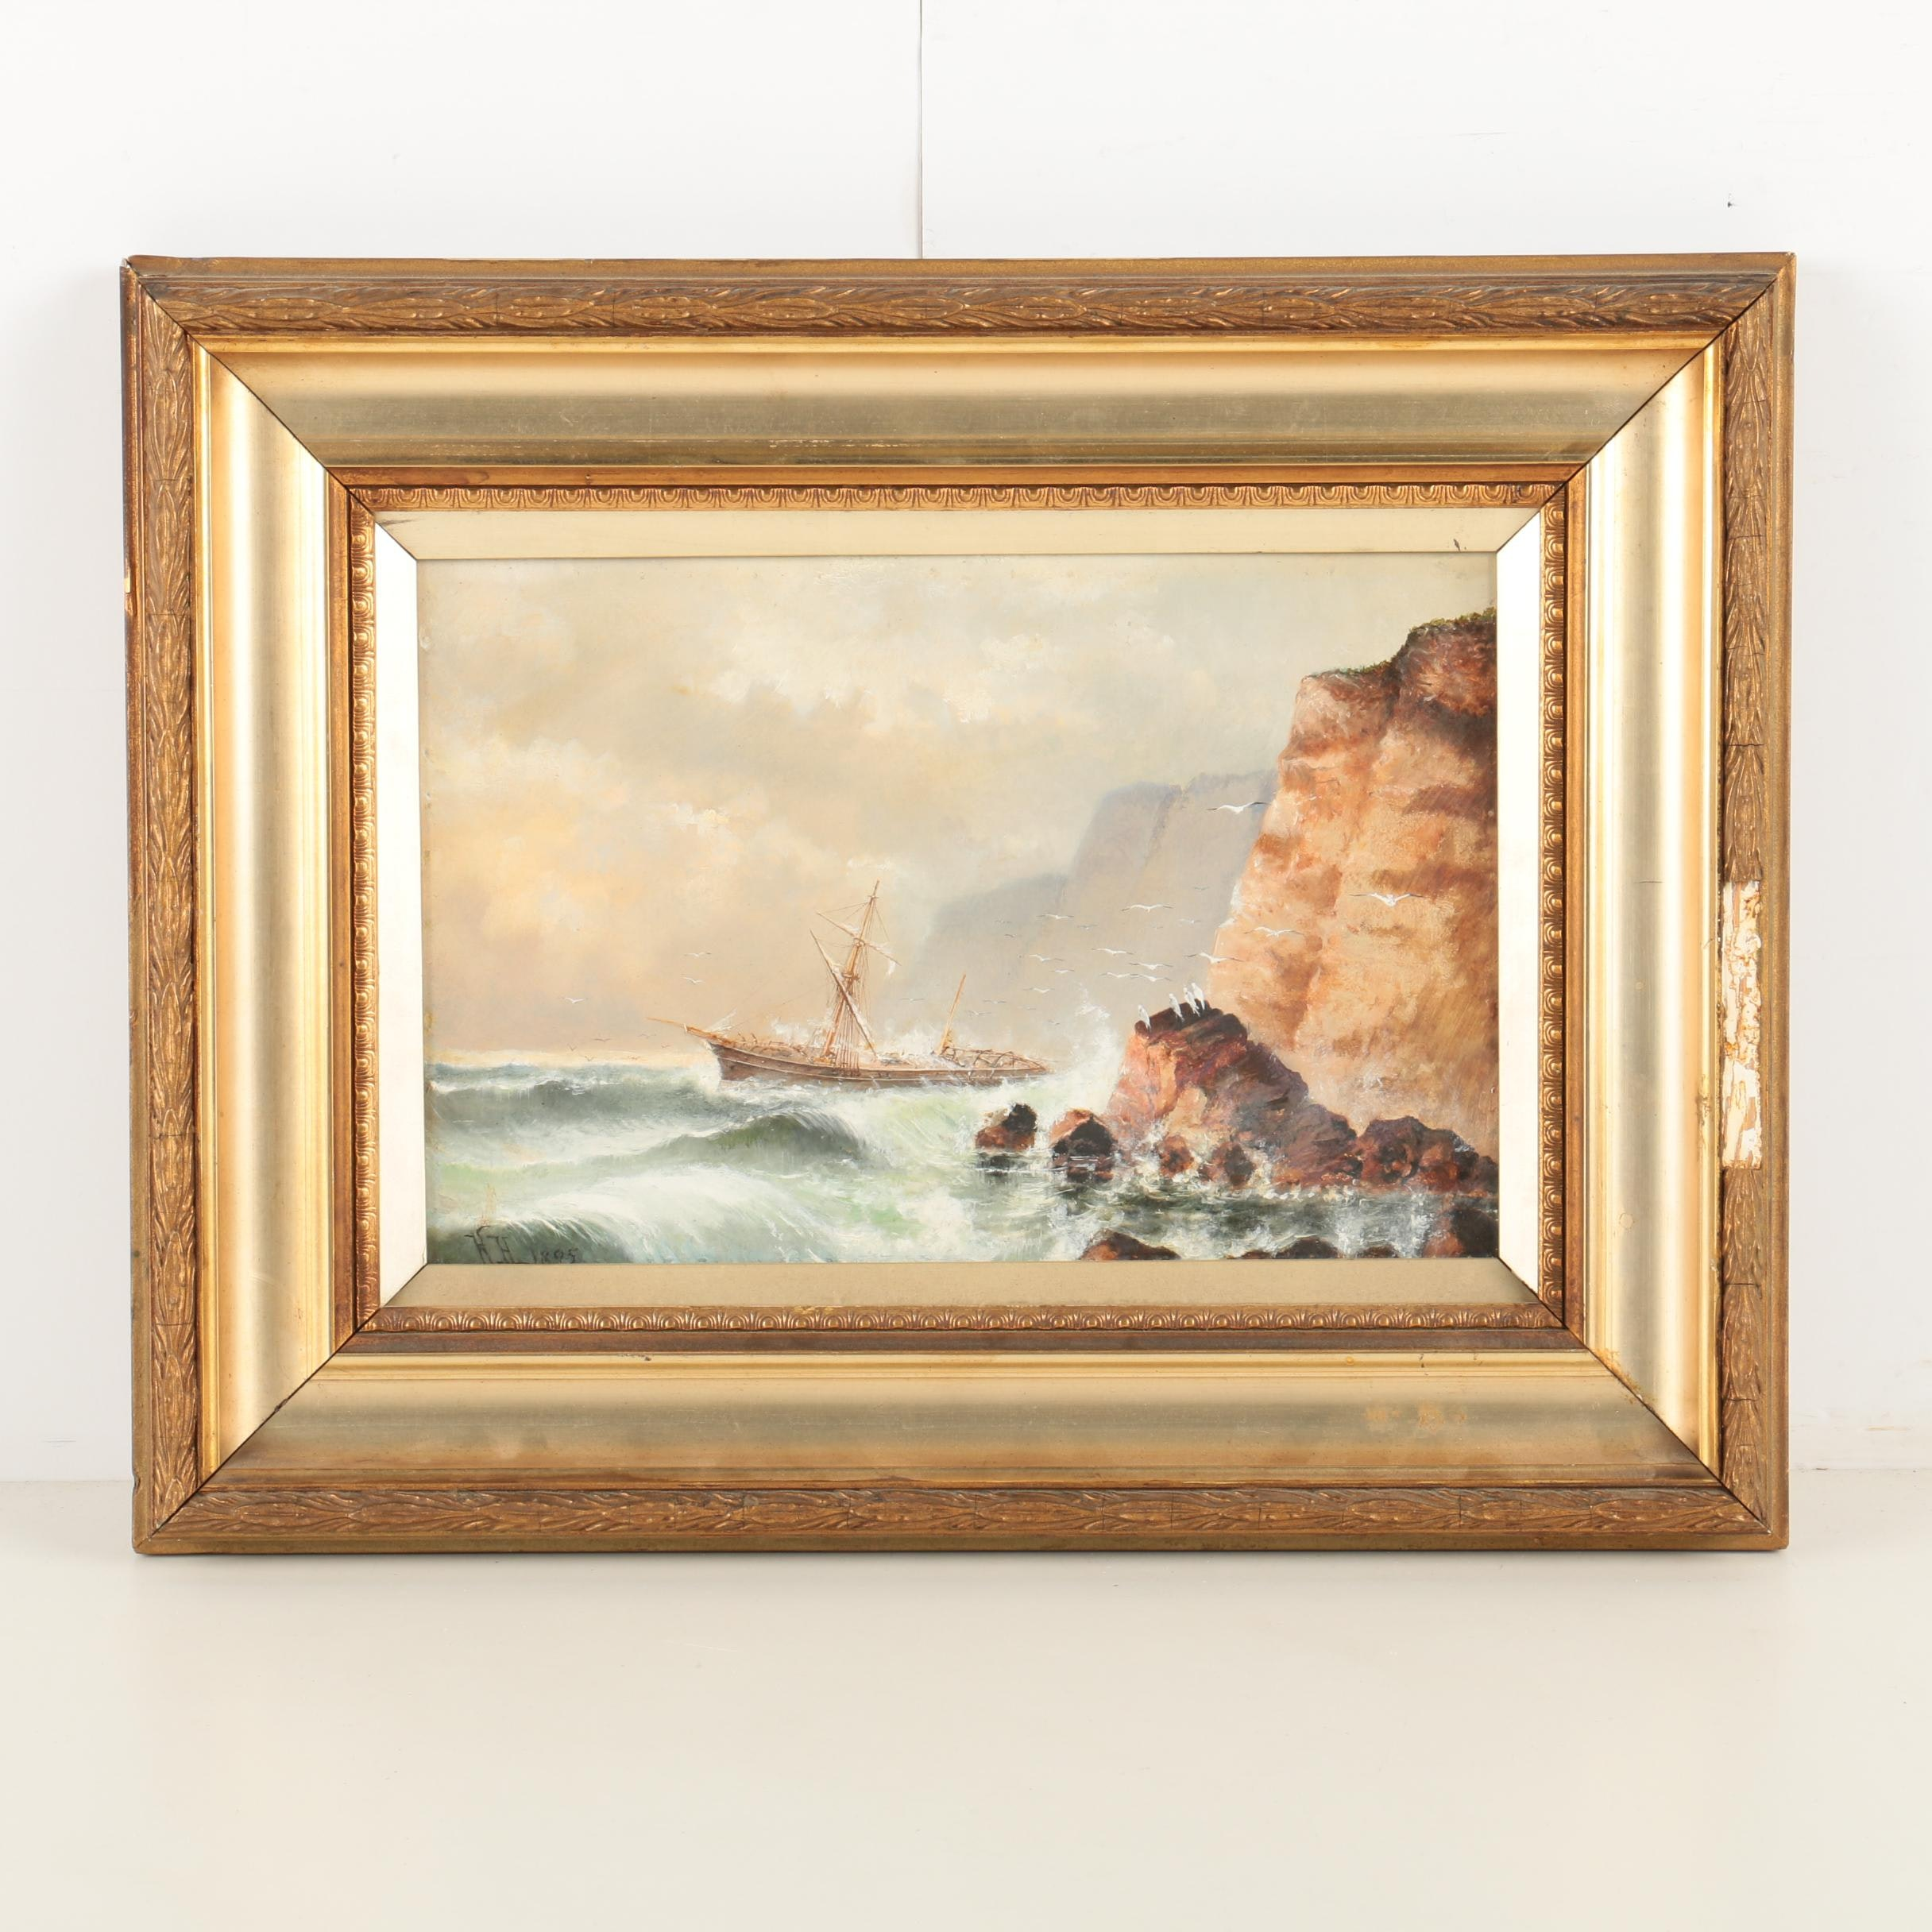 19th Century Oil Painting on Academy Board of a Maritime Scene